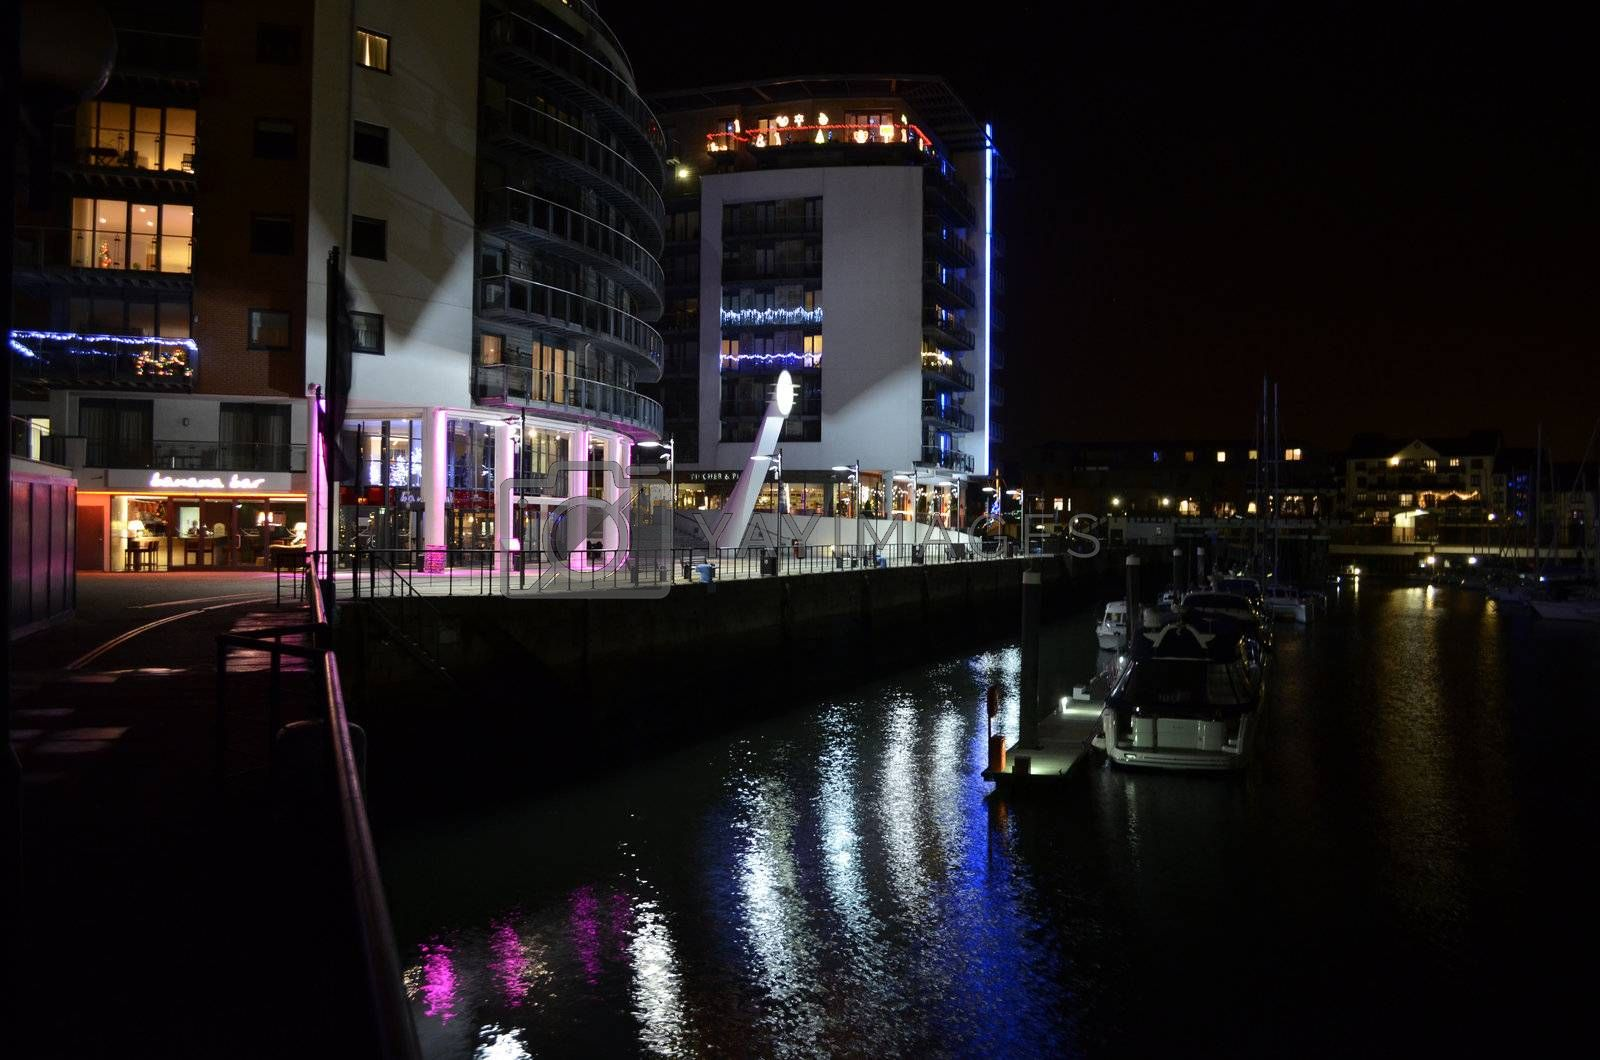 Illuminated evening Marina view with leisure boats and restaurants